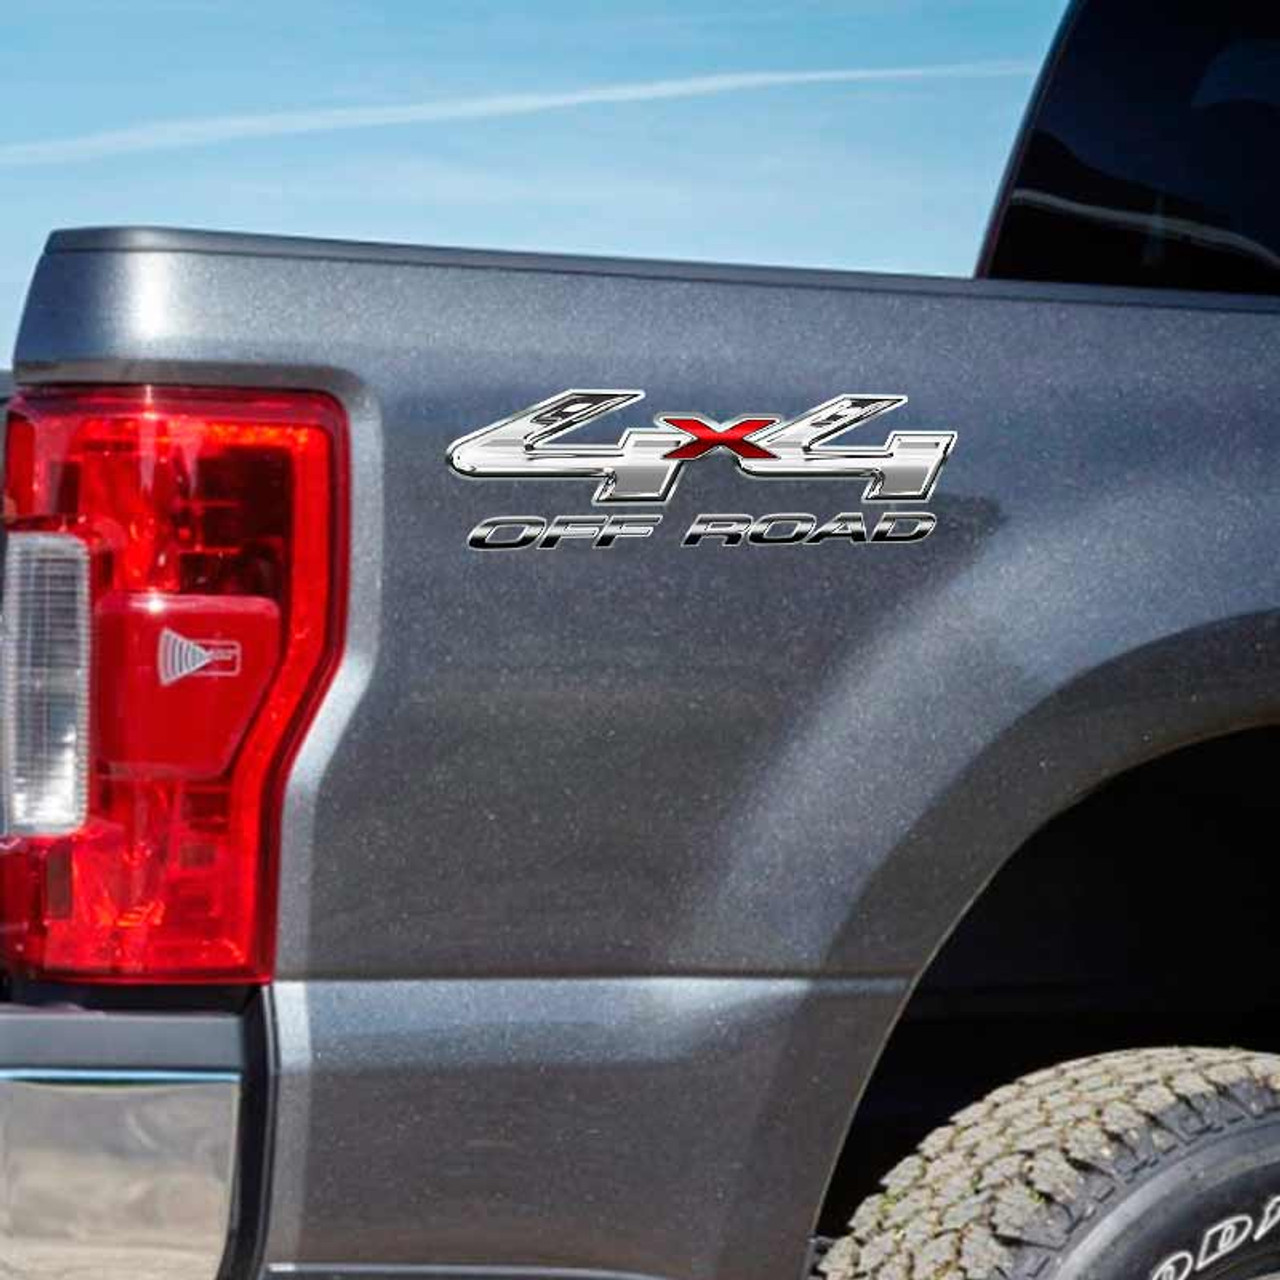 CHROME Set 4x4 Fx4 Truck Bed Decals for Ford F-150 and Super Duty